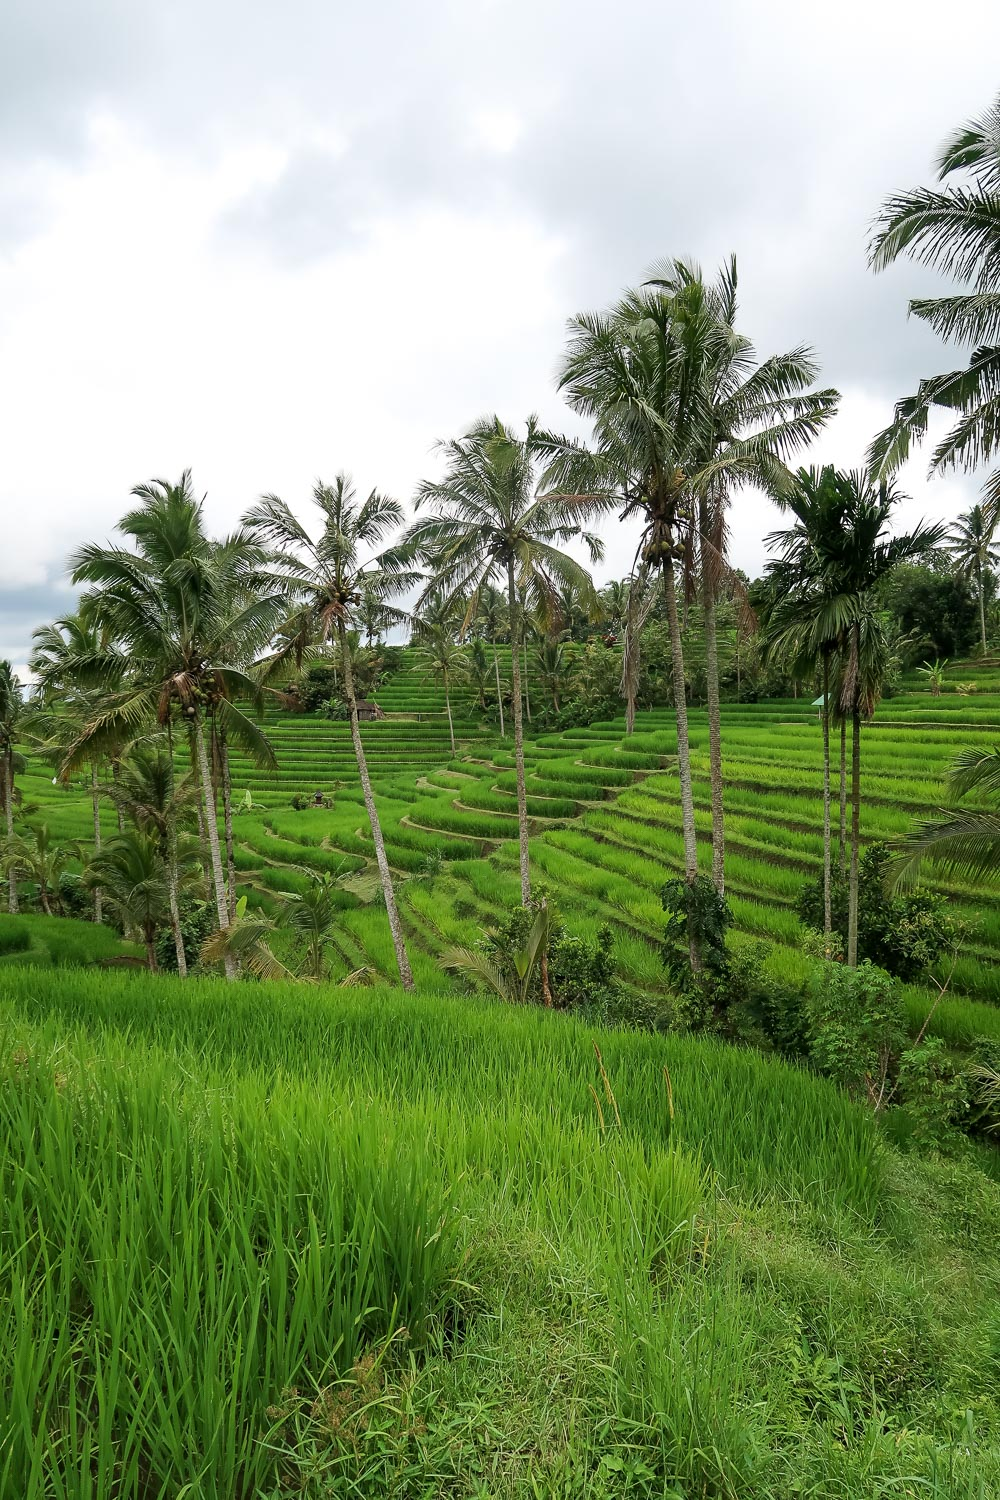 Jatiluwih Rice Terraces, Unesco site in Bali